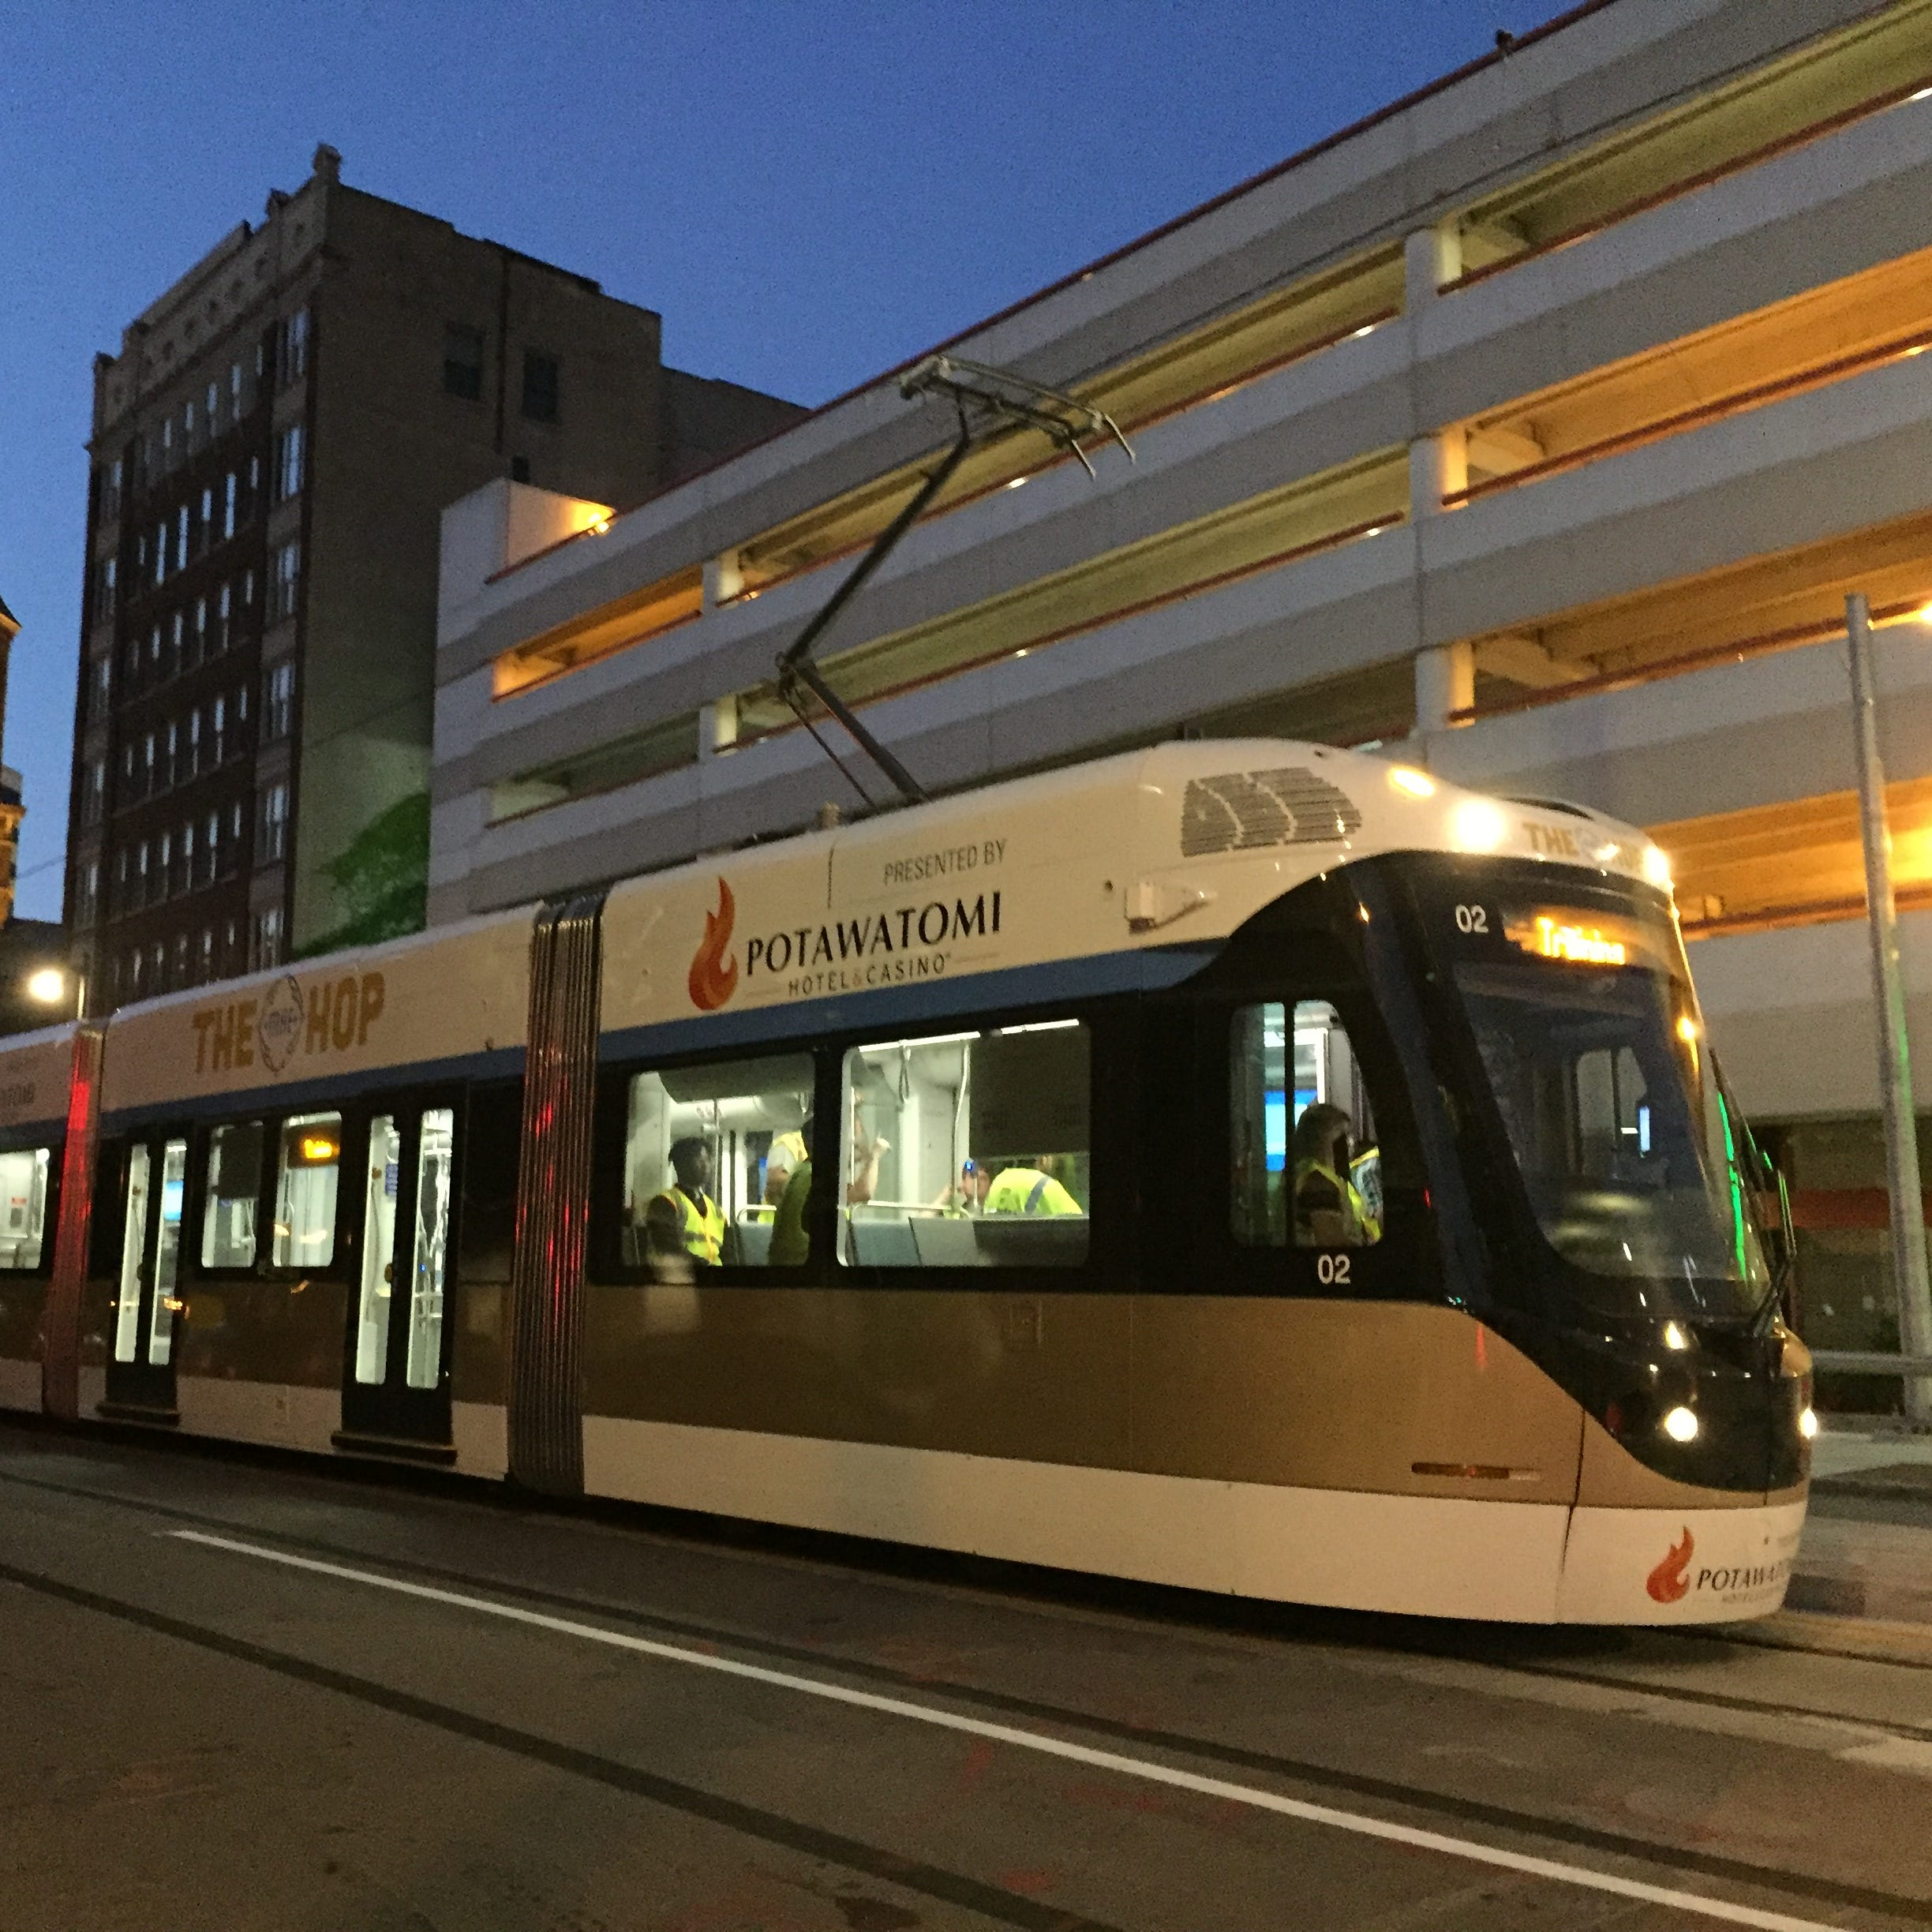 It's back to the future for streetcars as The Hop starts gliding down Milwaukee's streets